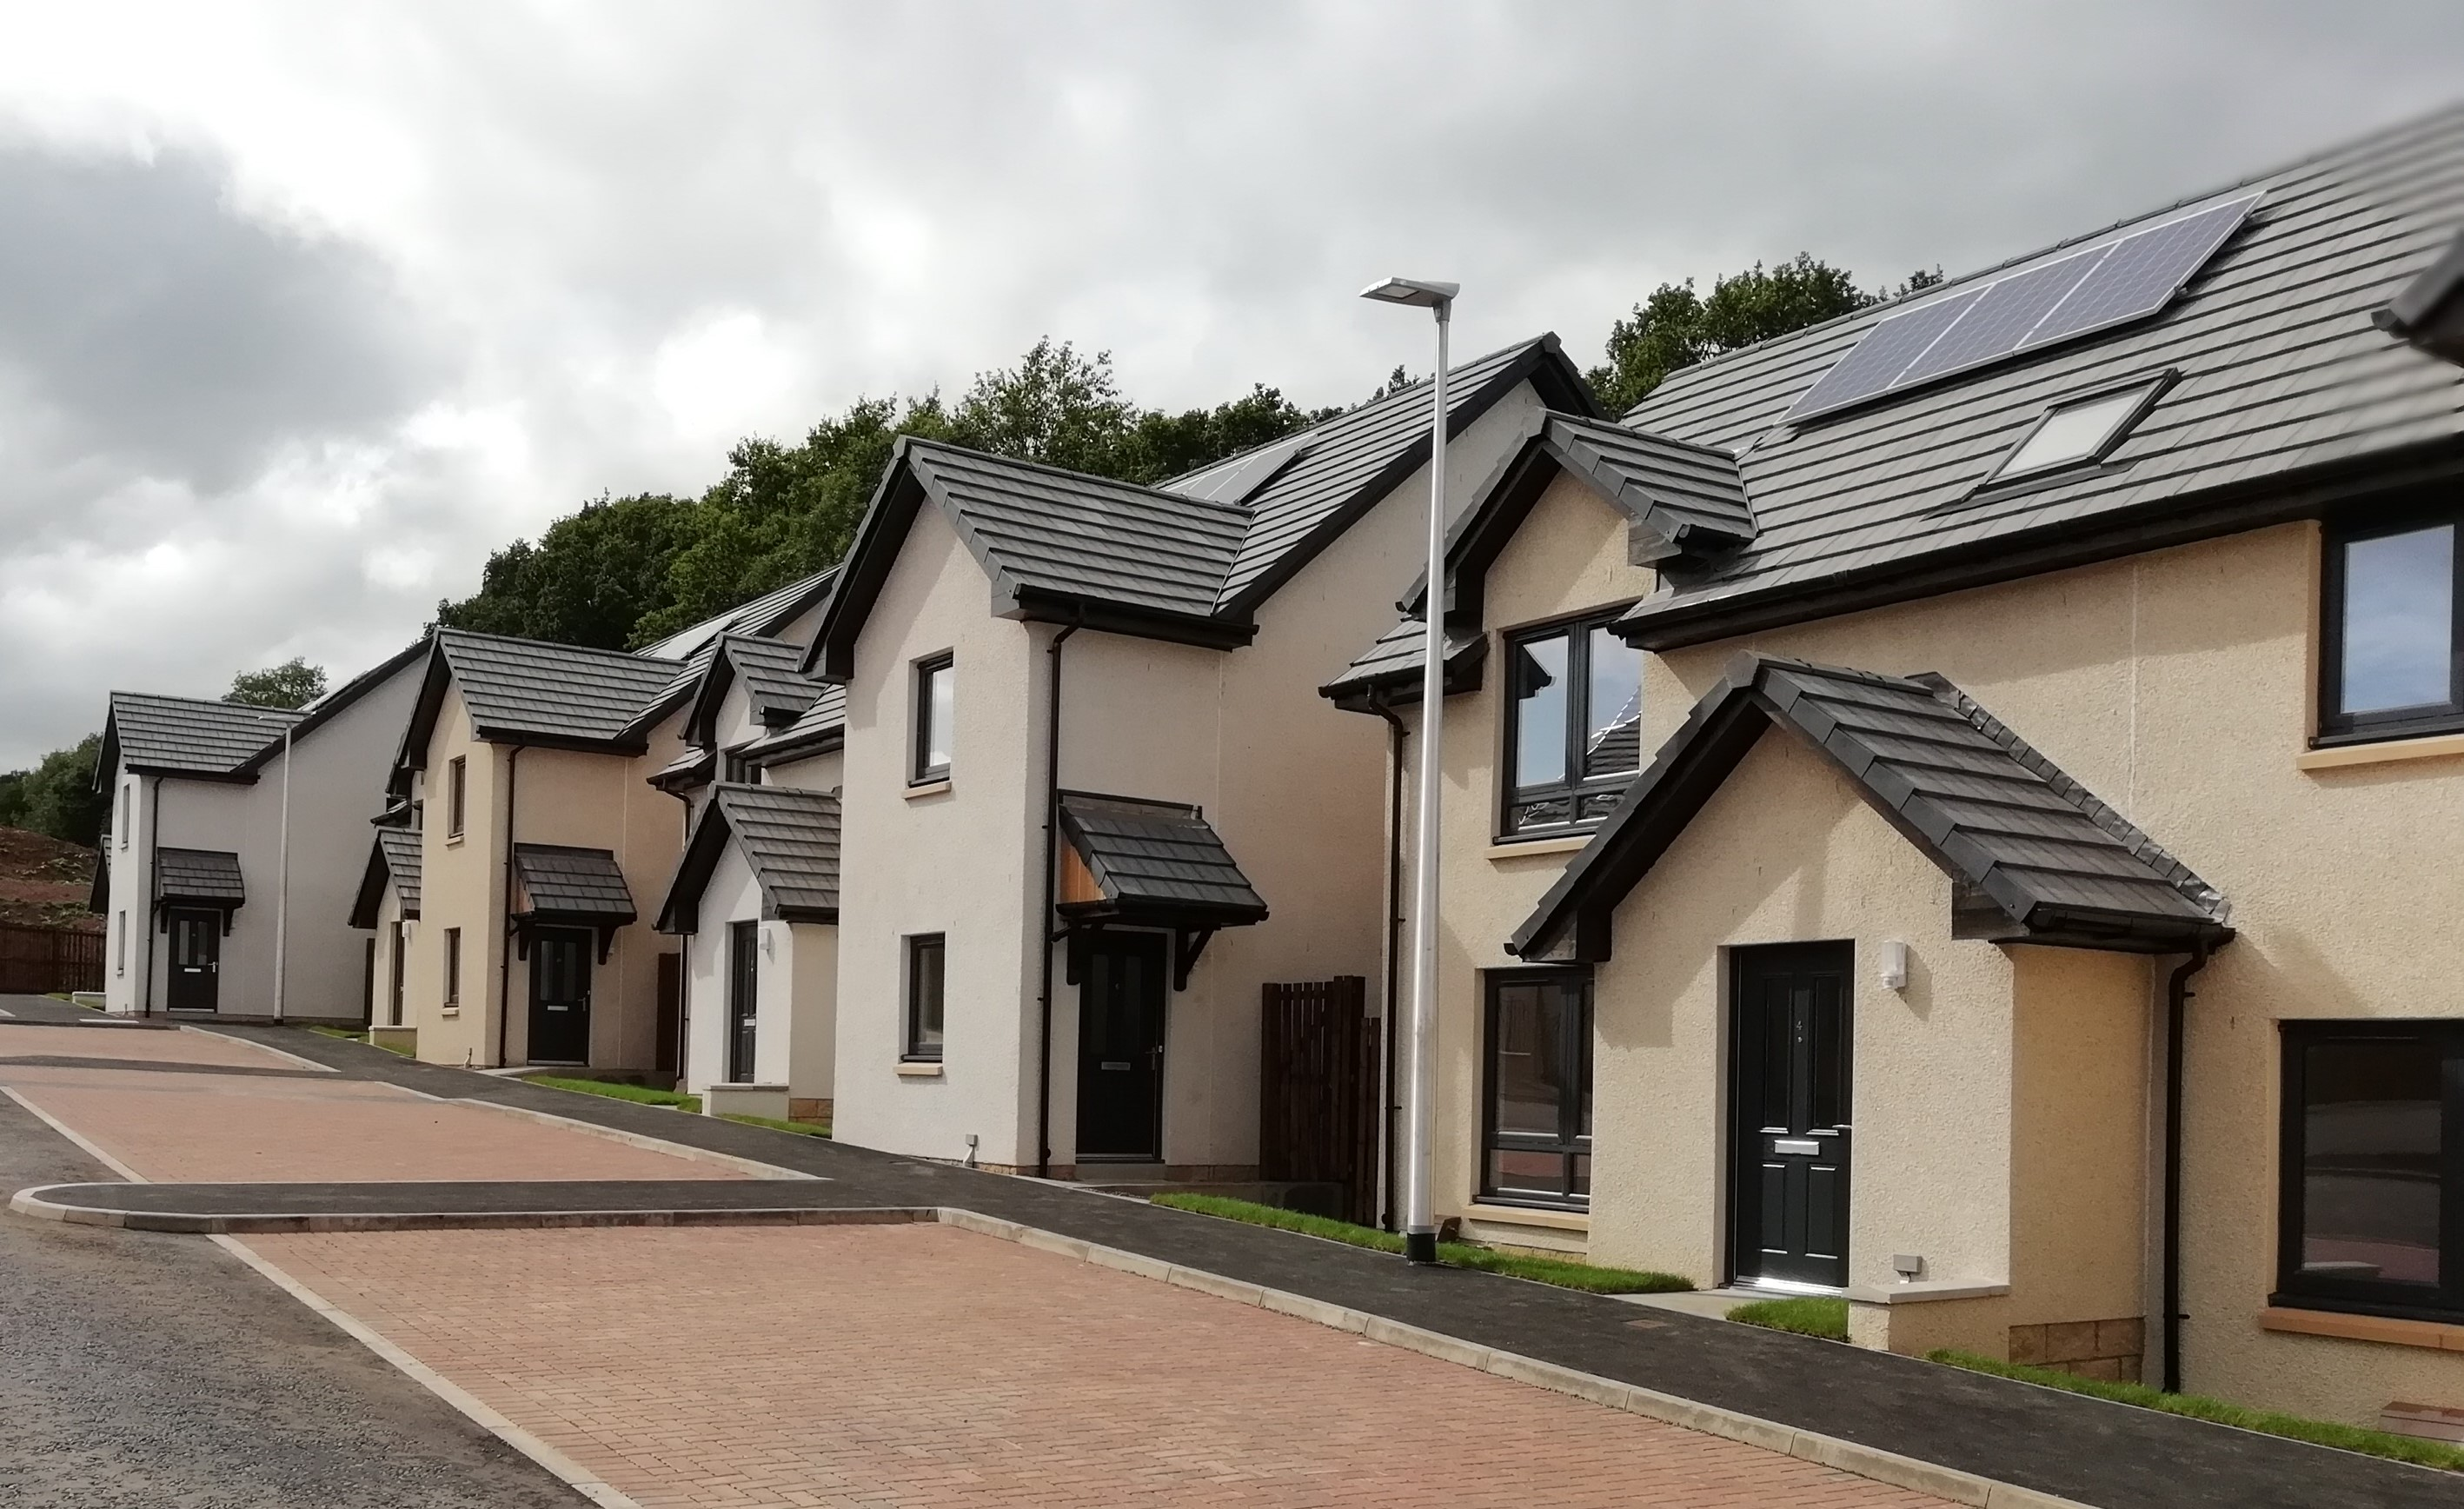 New figures underline huge need for affordable housing in Borders towns